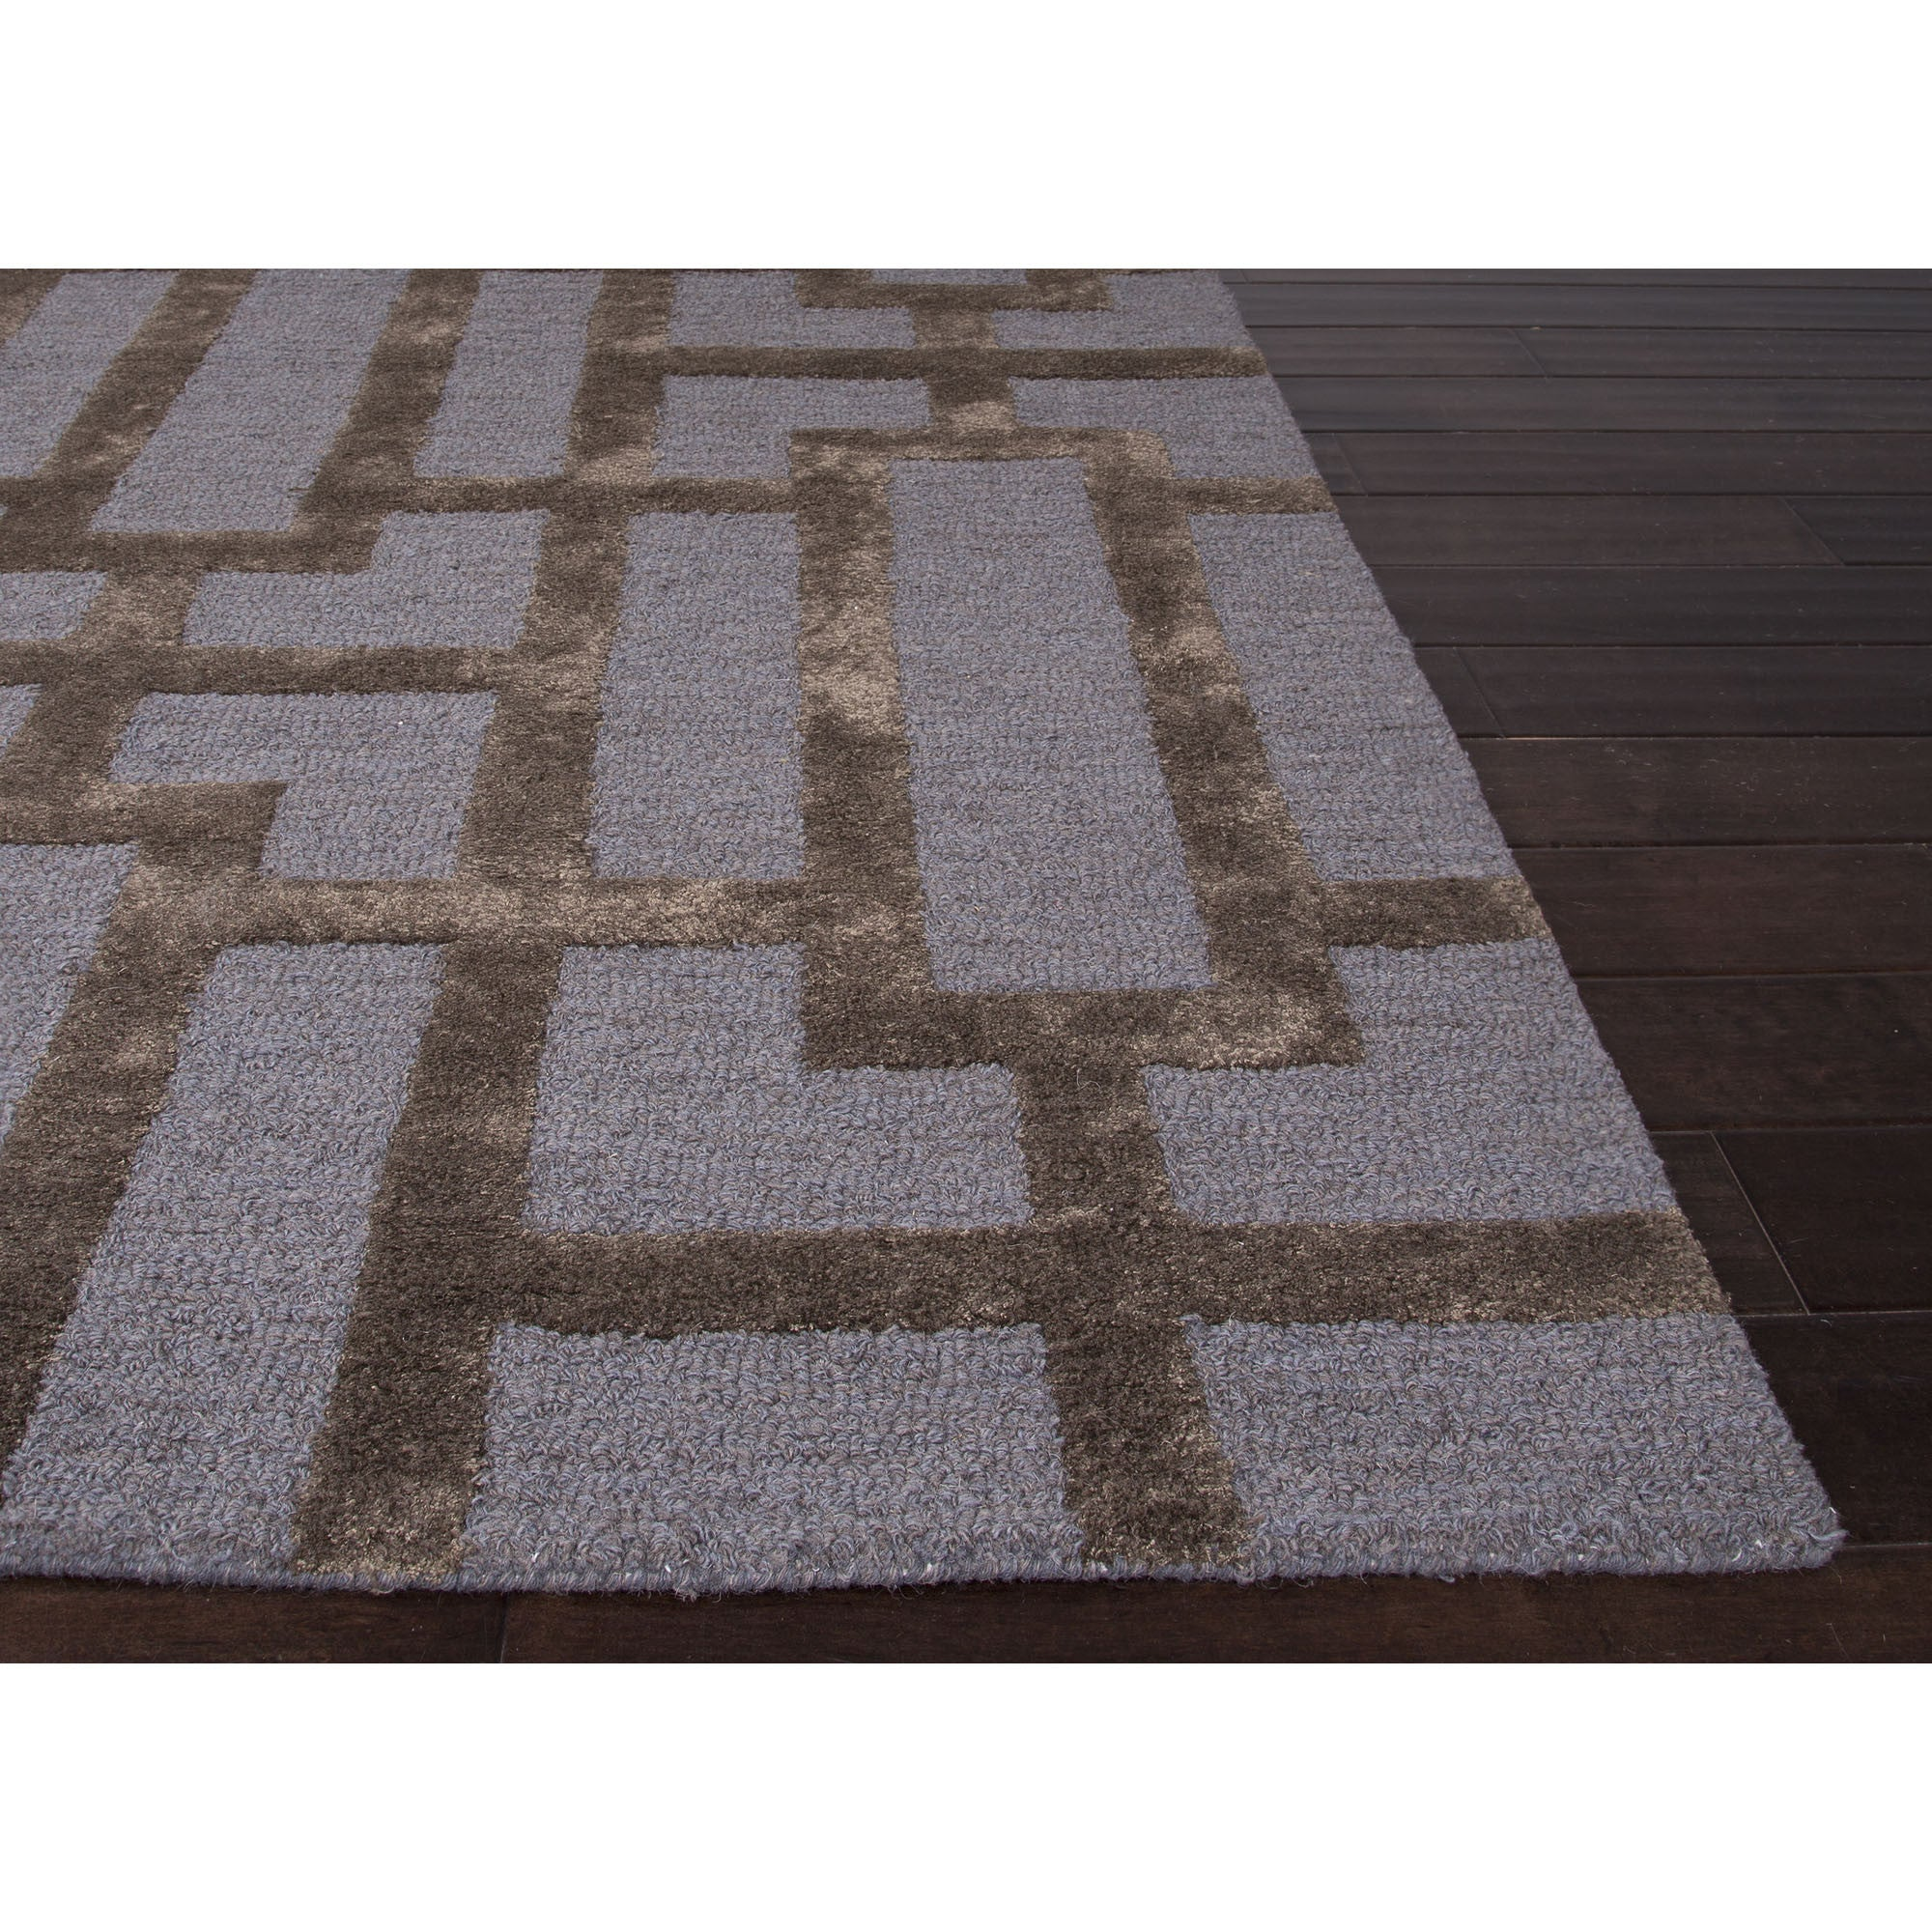 Jaipur rugs modern geometric pattern blue brown wool and for Modern wool area rugs